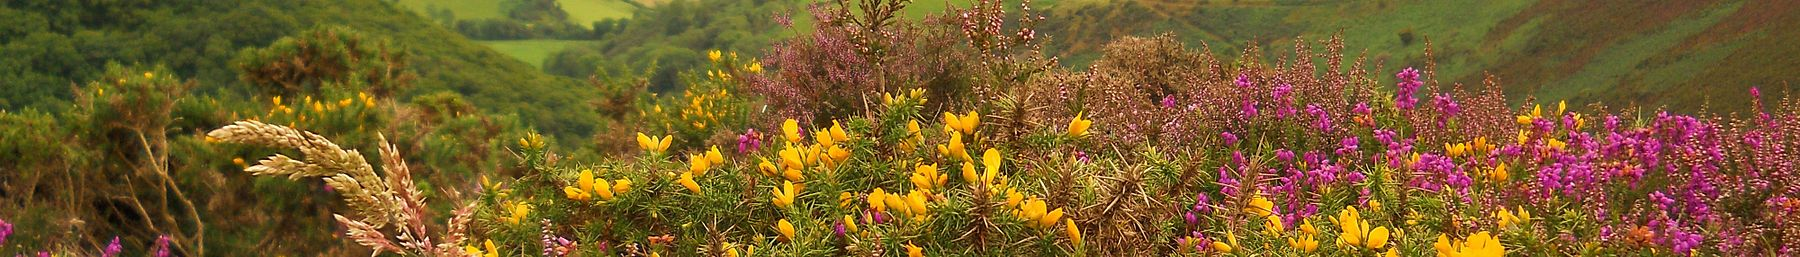 Heather atop Exmoor